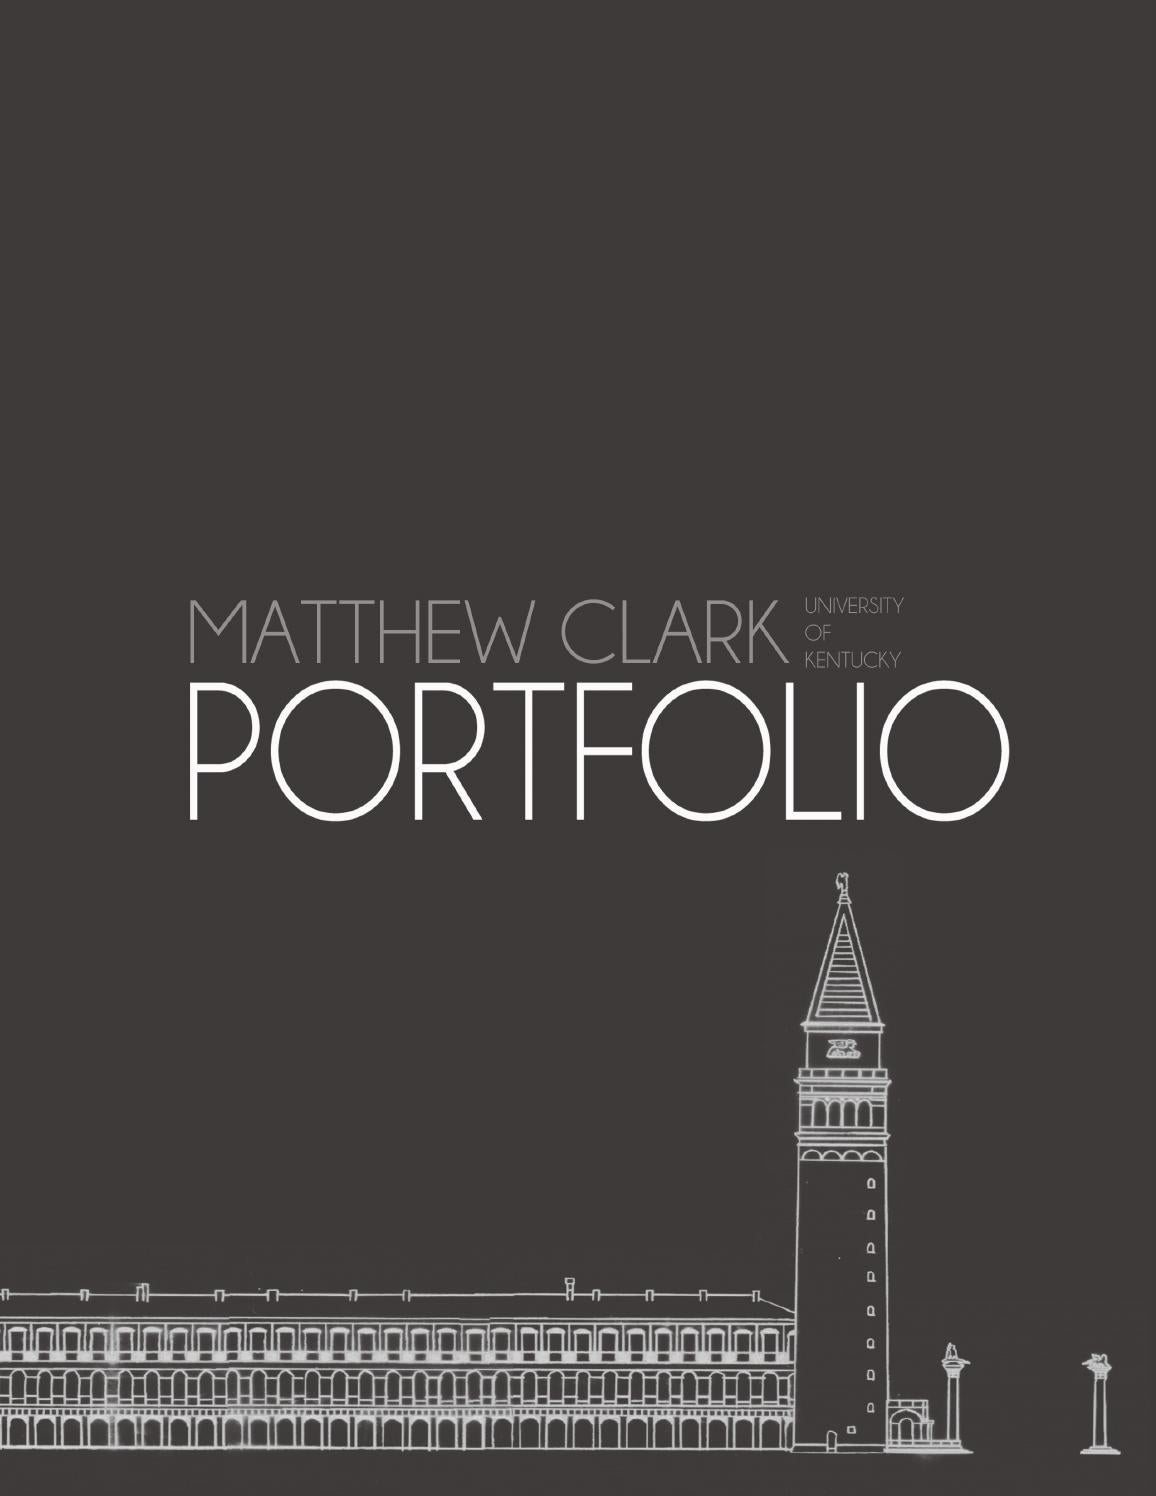 Matthew clark landscape architecture portfolio by matthew - Interior design internships houston ...